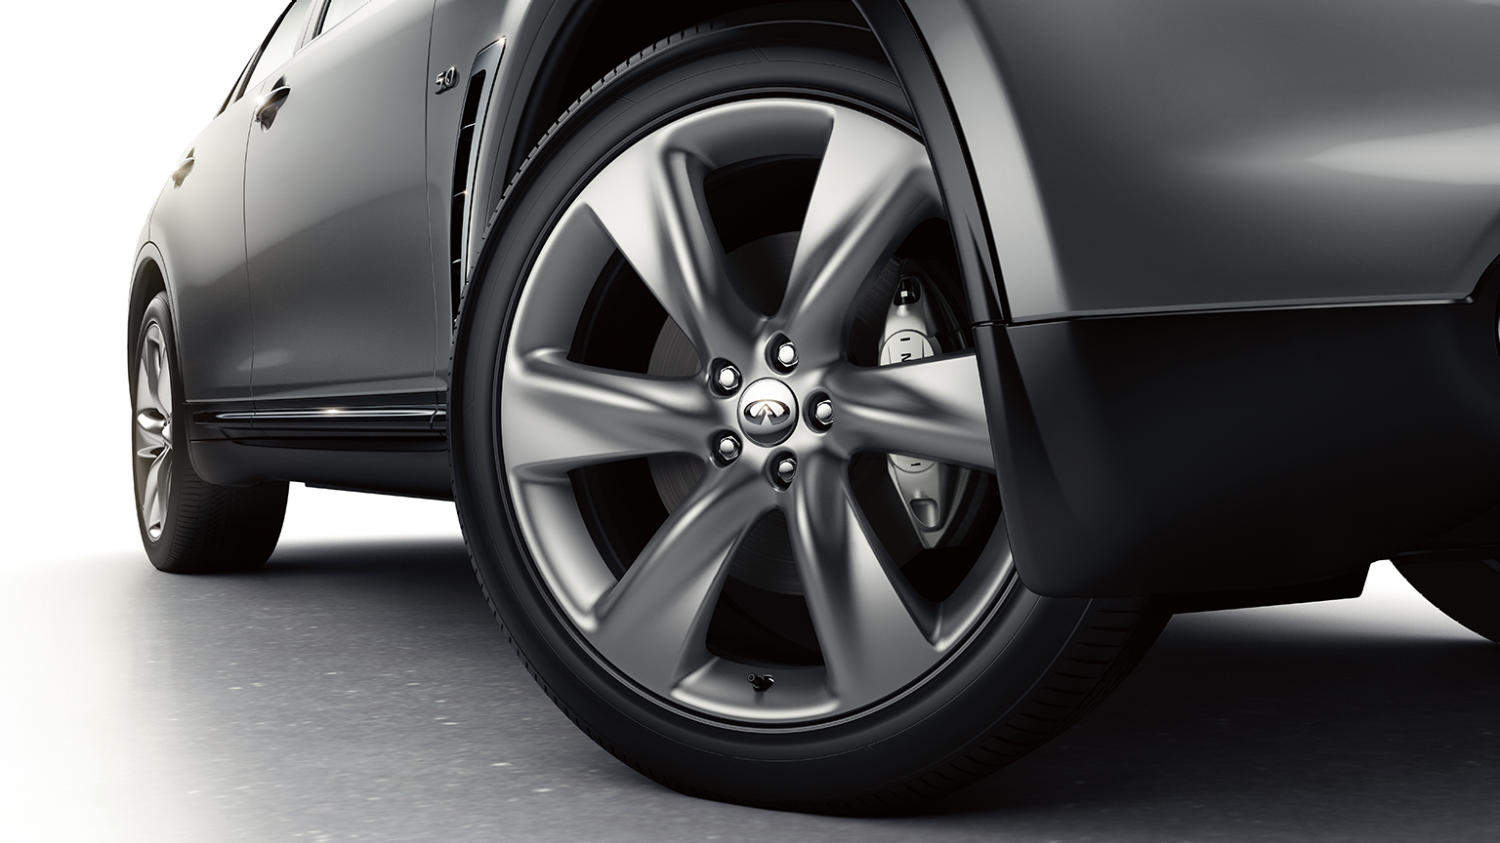 Infiniti QX70 wheel detail